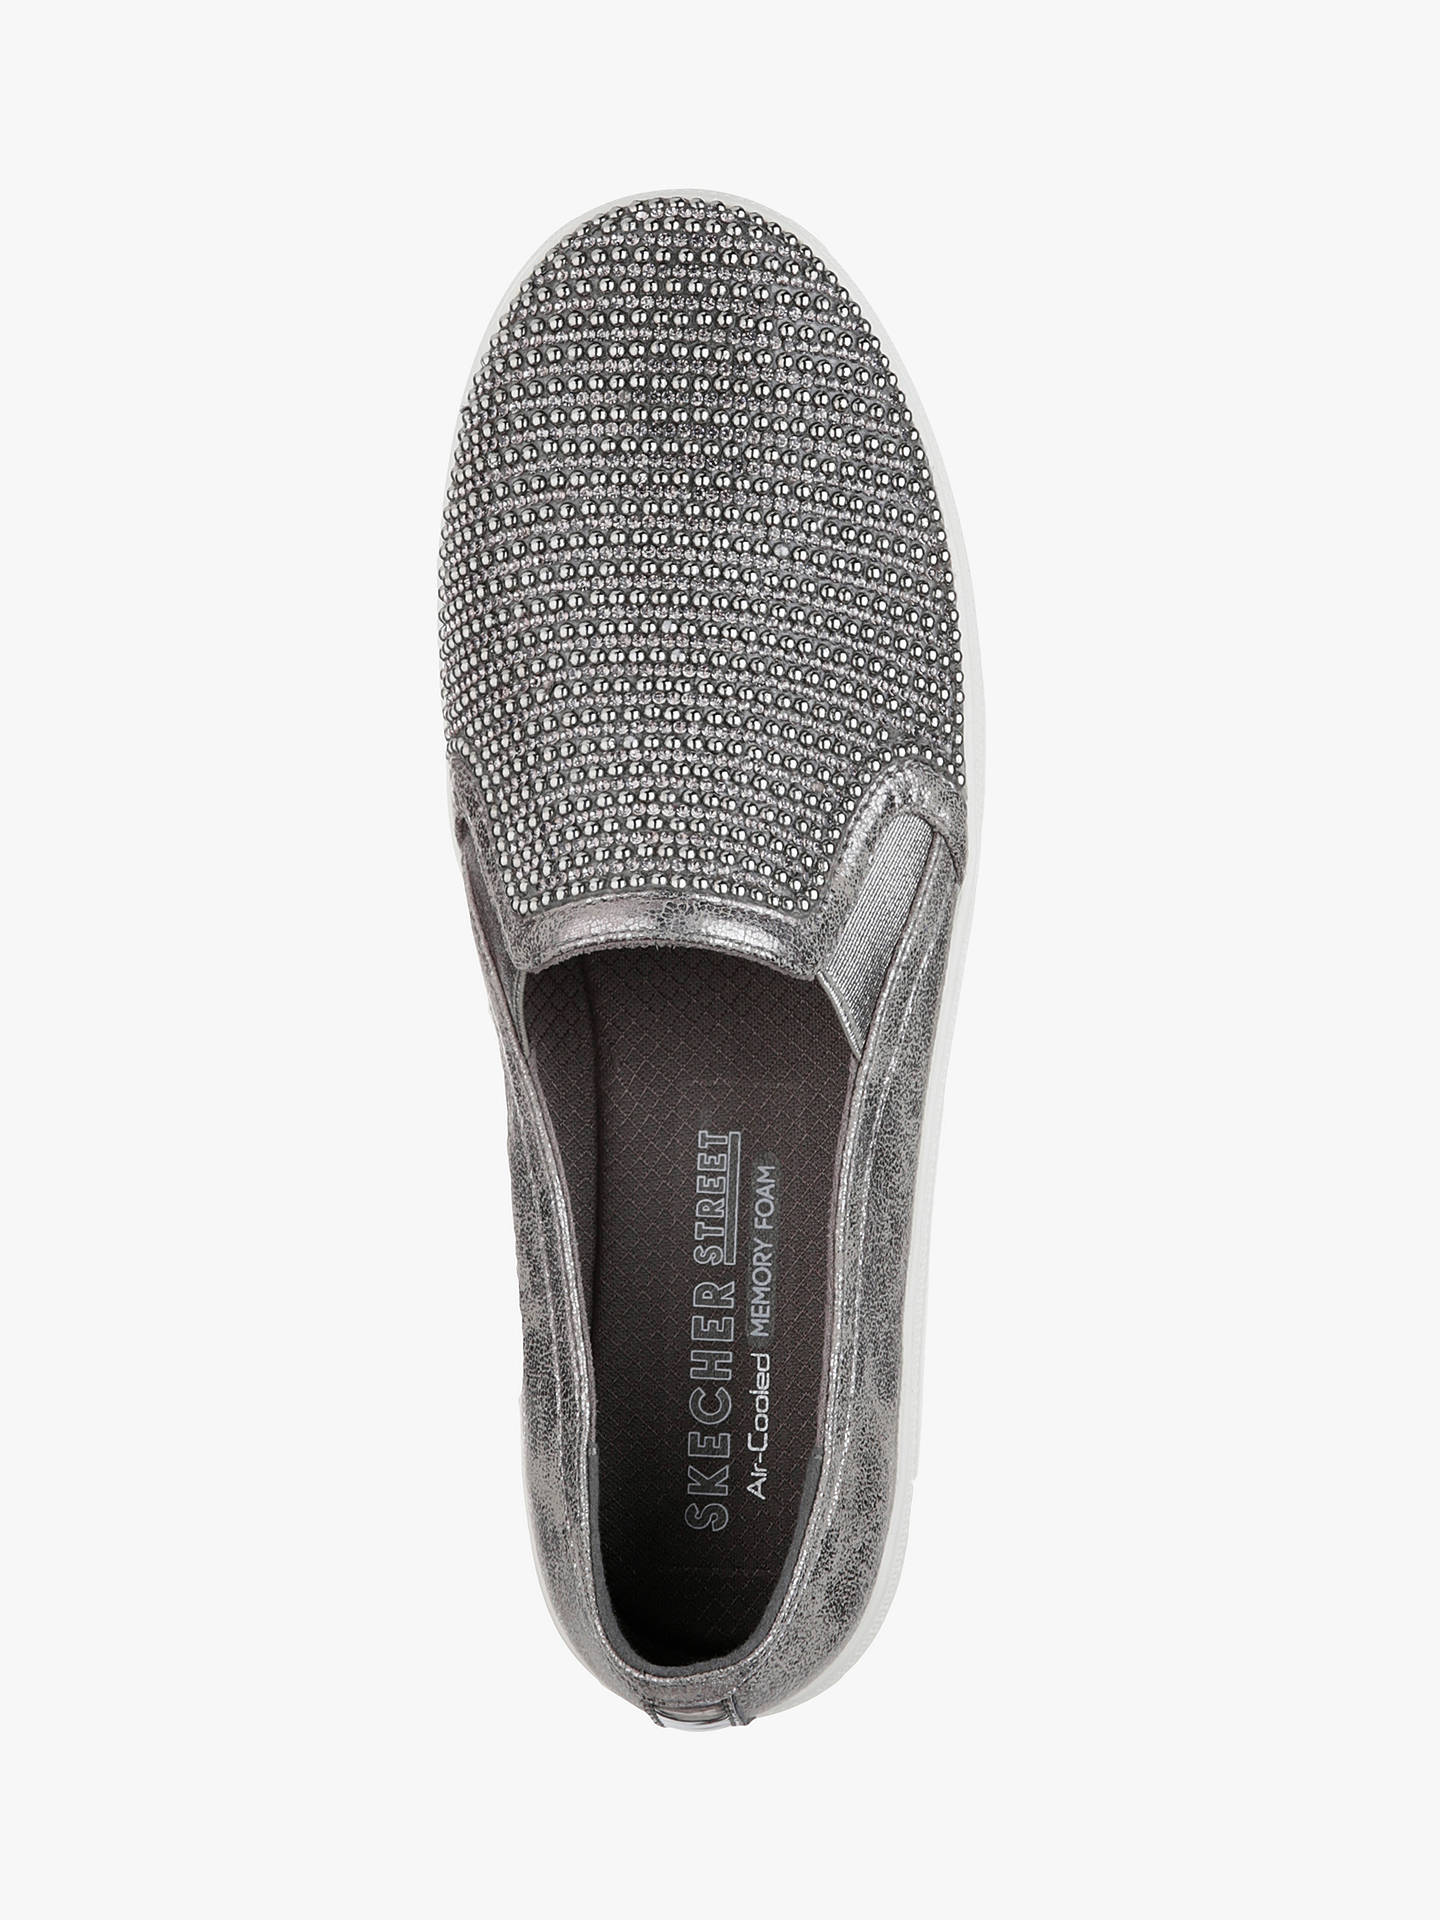 Buy Skechers Cheyanne Embellished Plimsolls, Pewter, 8 Online at johnlewis.com